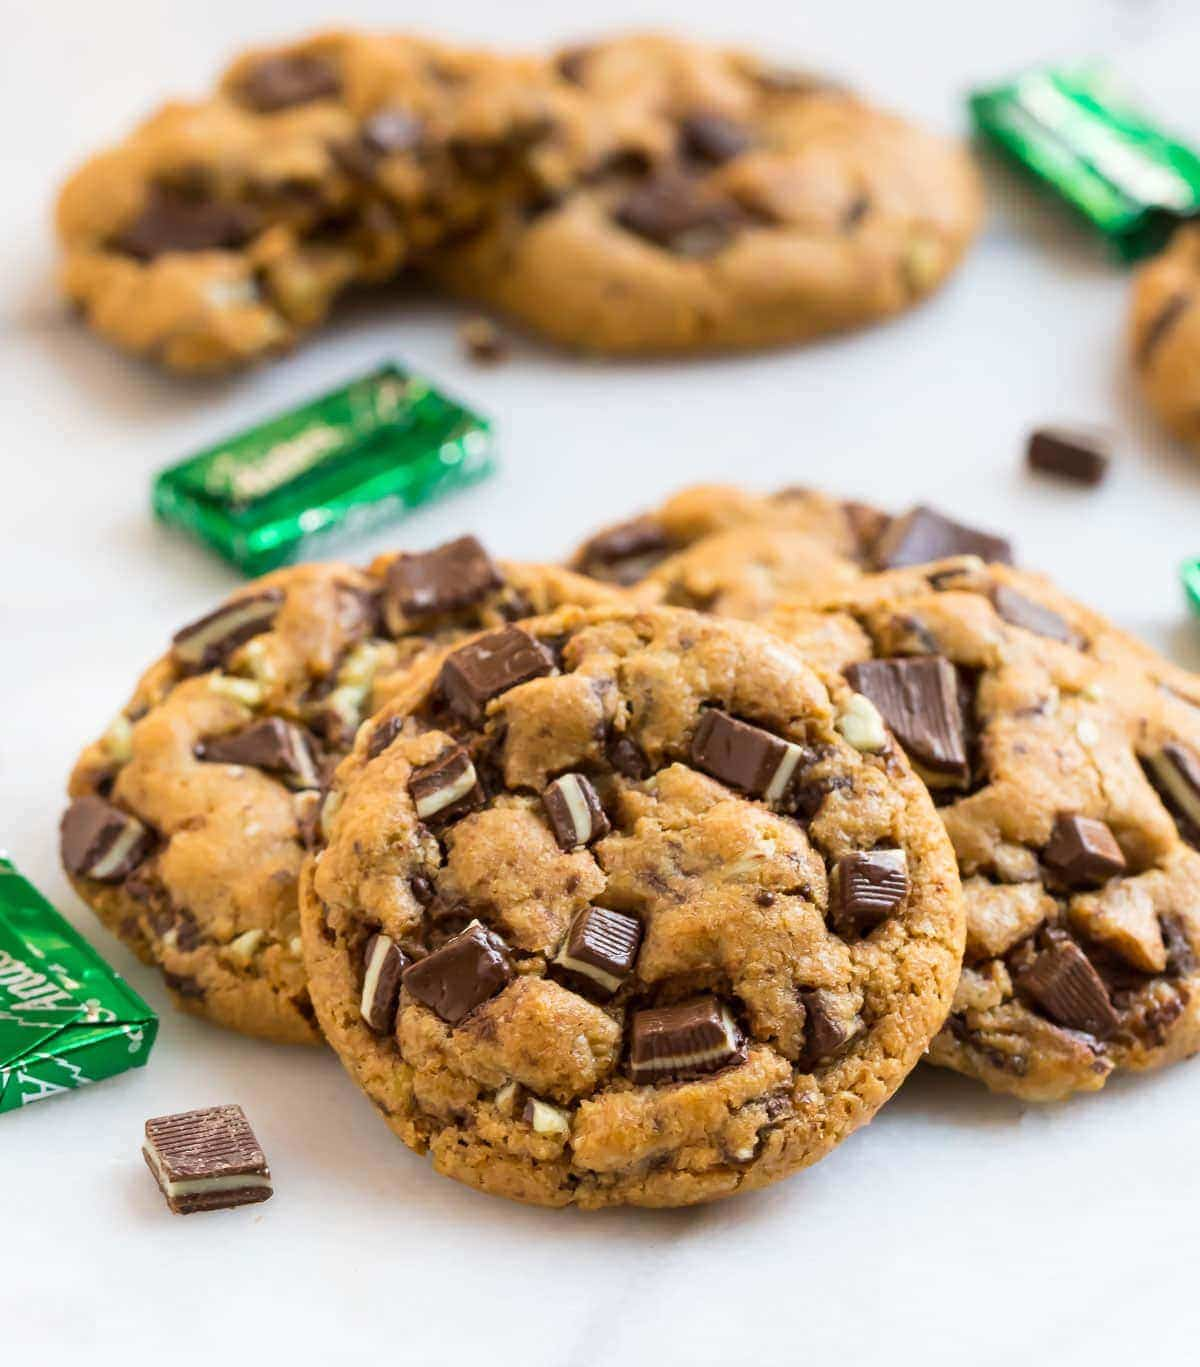 Andes Mint Cookies Festive And Easy Recipe Wellplated Com